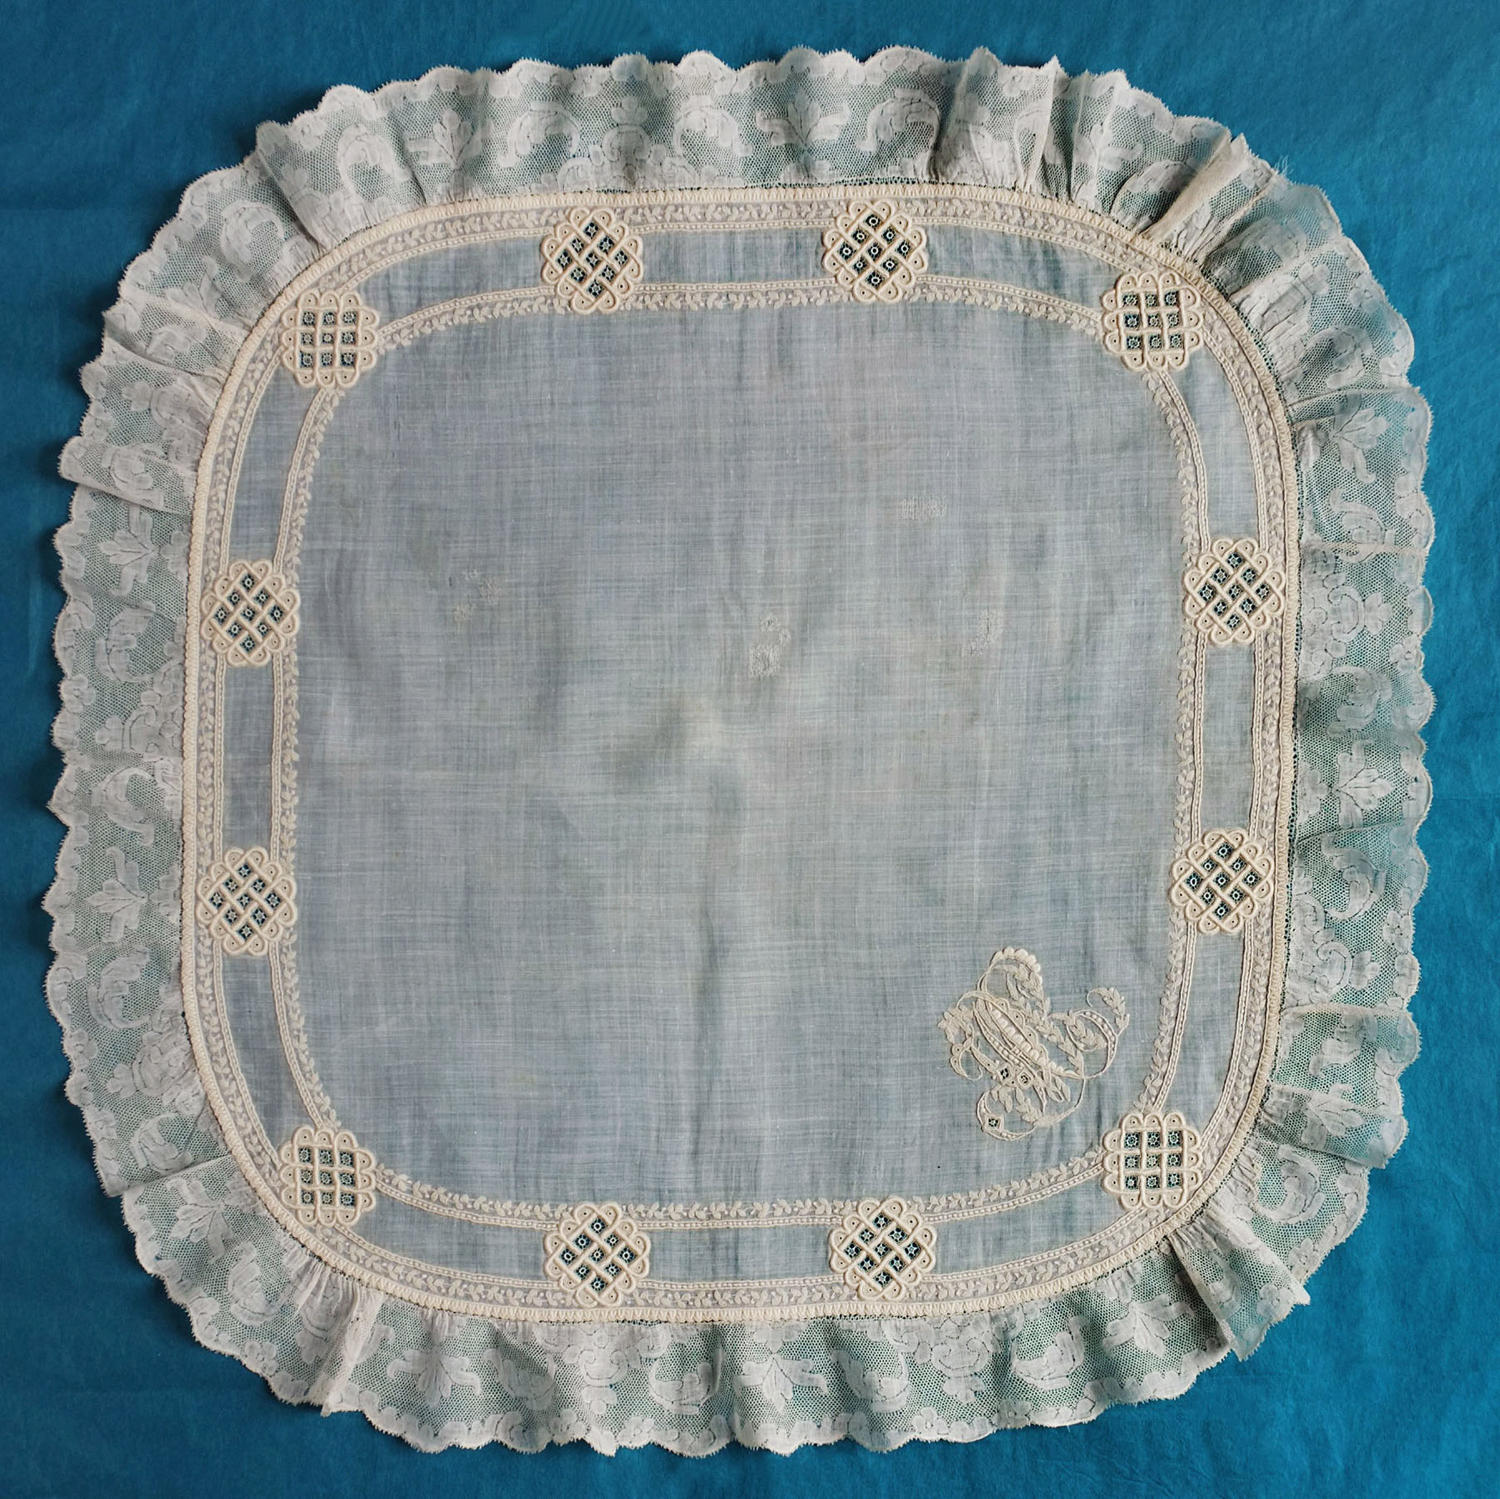 19th C. Whitework Handkerchief with 18th C. Valenciennes Lace Border